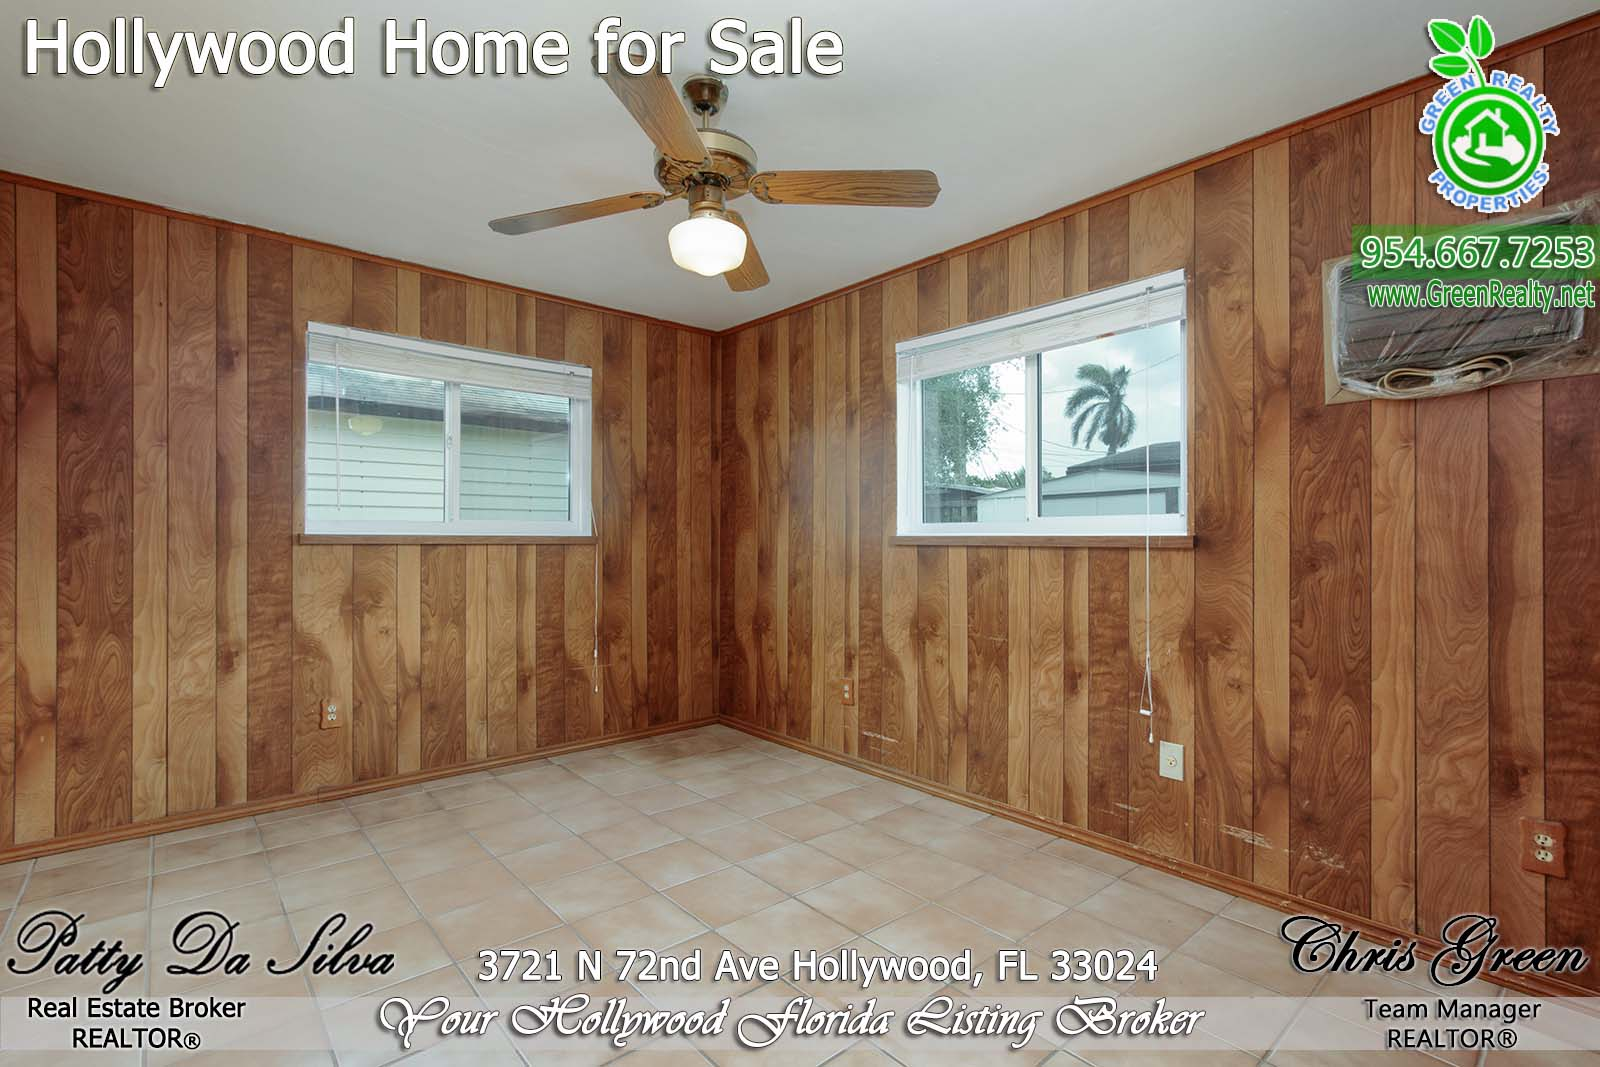 18 Hollywood Florida Real Estate Listing Patty Da Silva Green Realty properties (17)